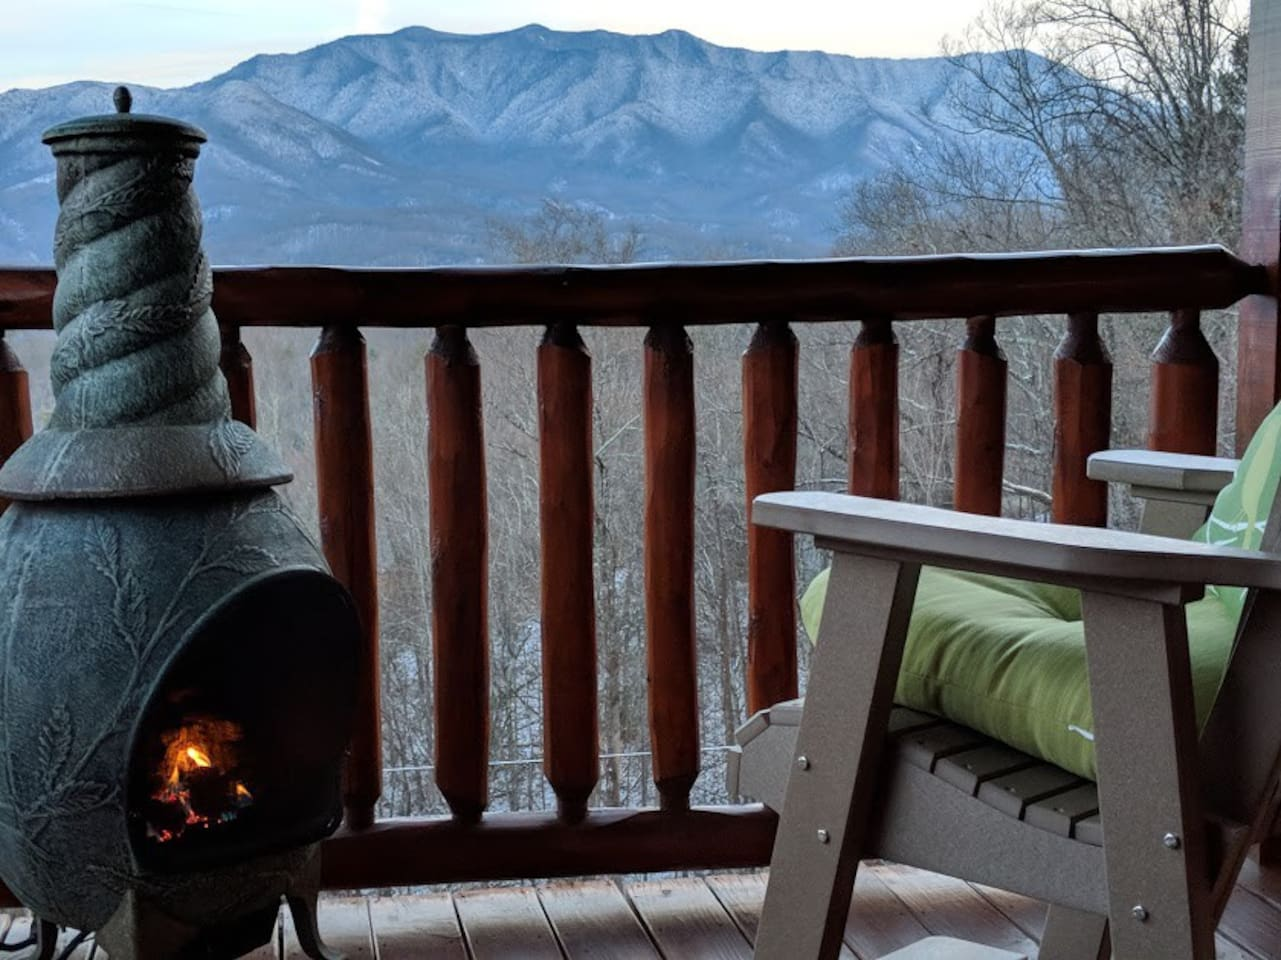 Deck Gas Fireplace is operational year round! Hot tub is also on this deck & also views the fireplace.